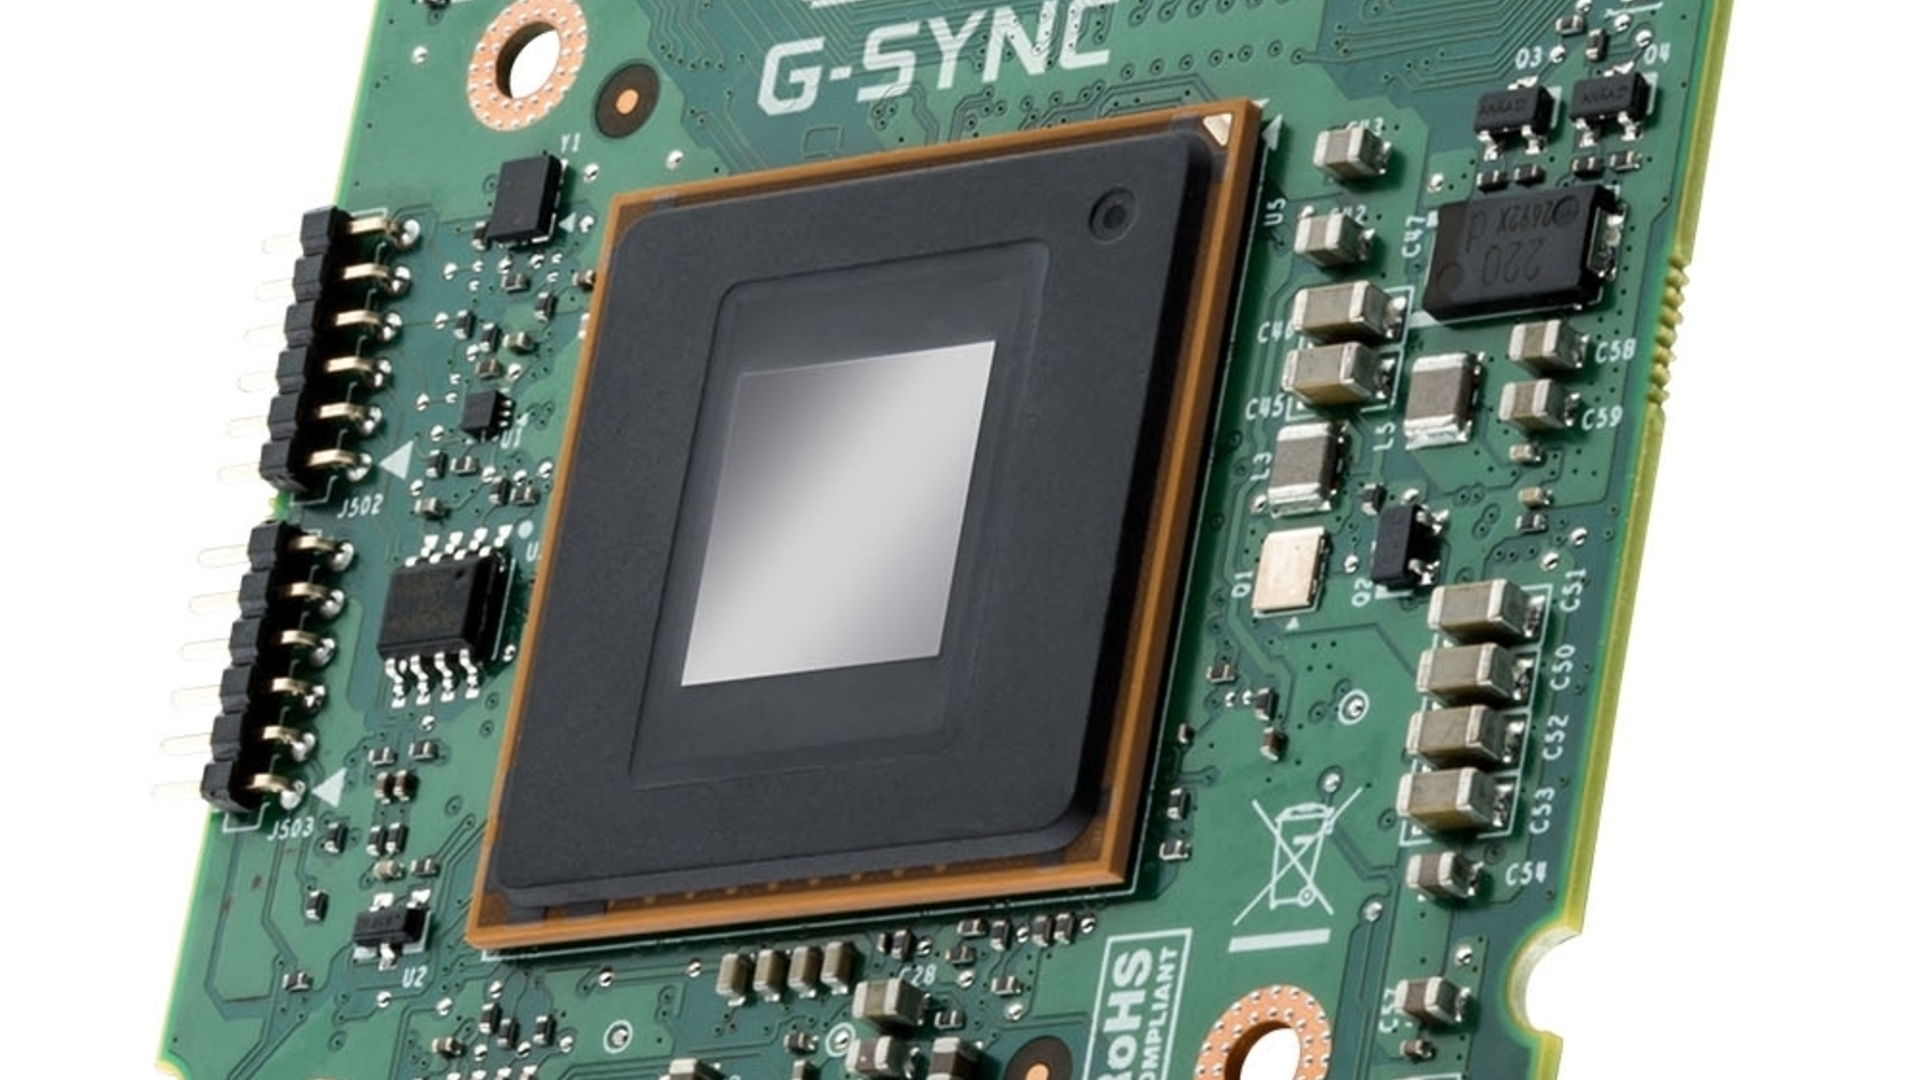 Nvidia G-Sync: the end of screen-tear in PC gaming